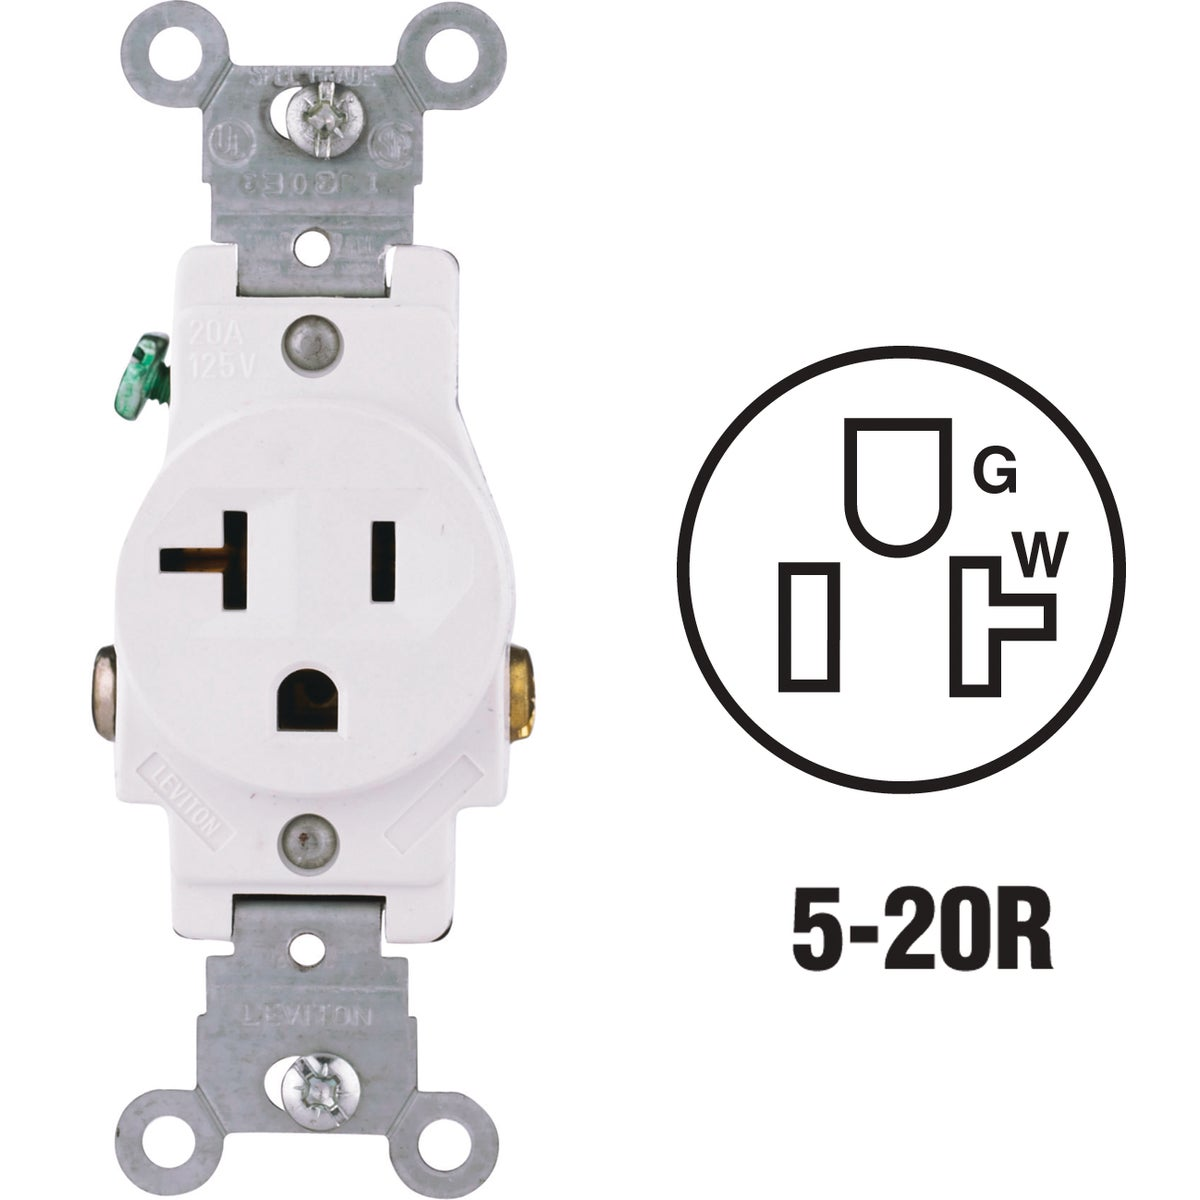 WHT SINGLE OUTLET - S02-5801-KWS by Leviton Mfg Co